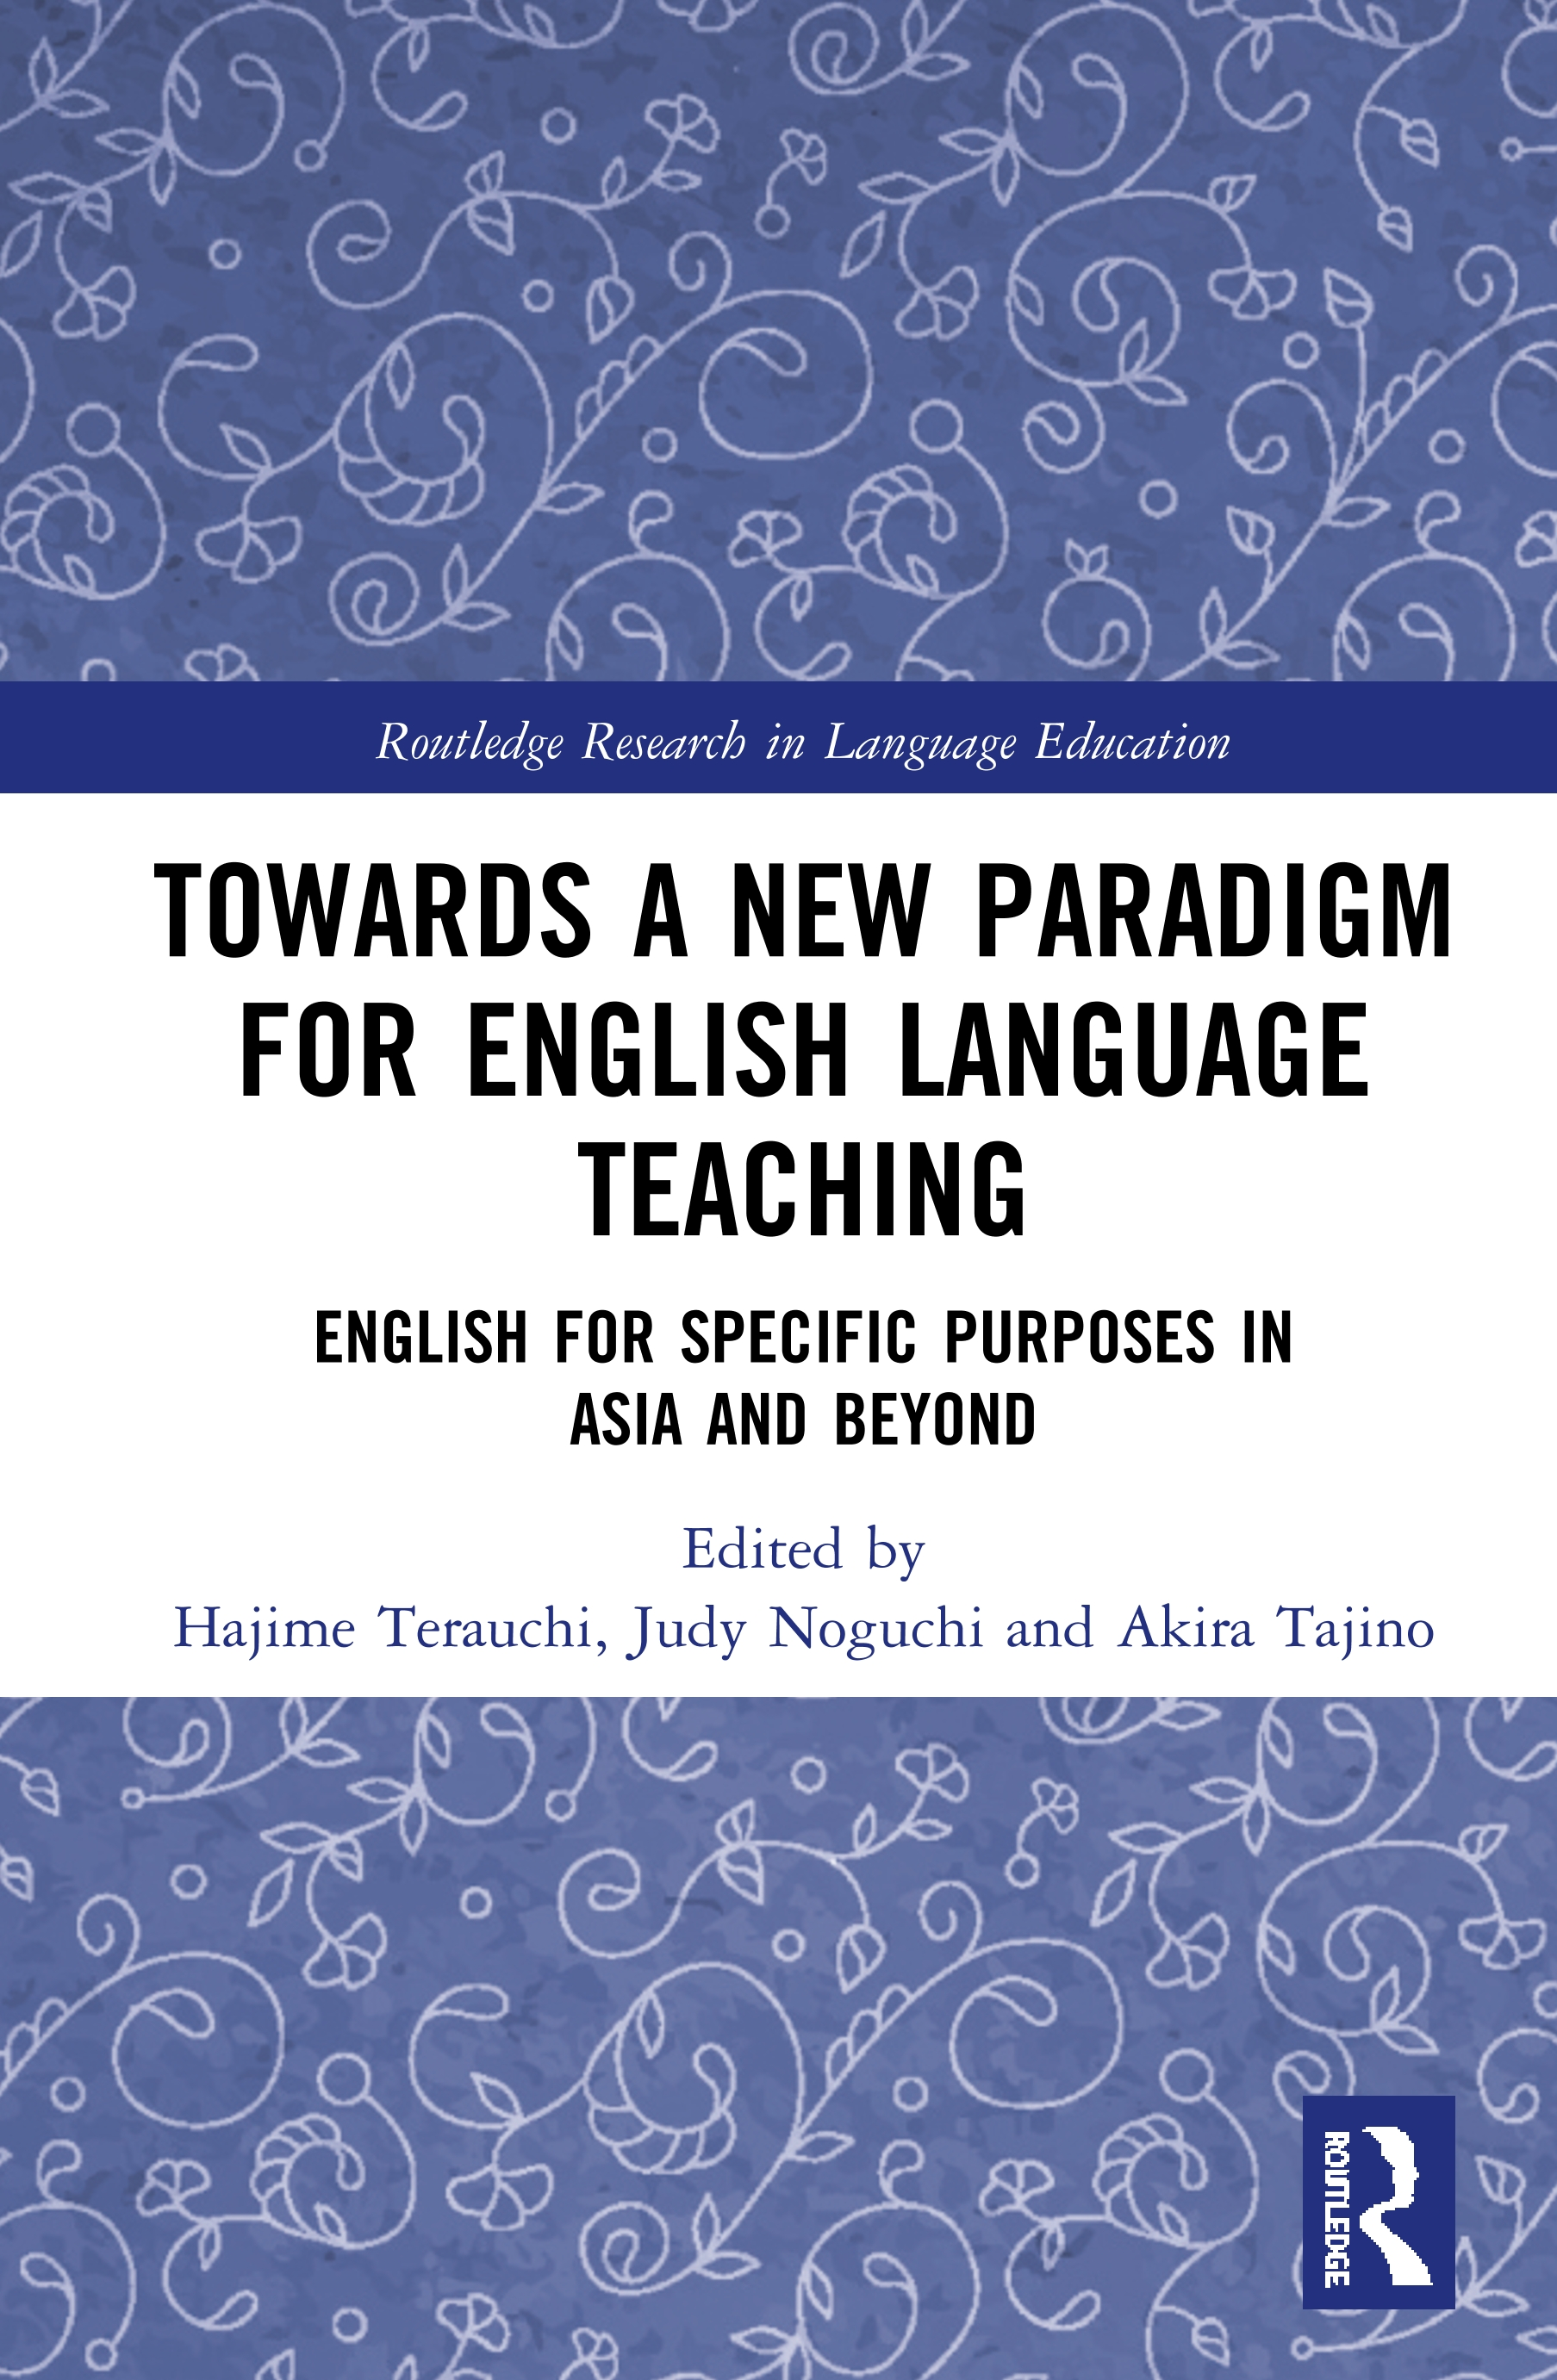 Towards a New Paradigm for English Language Teaching: English for Specific Purposes in Asia and Beyond book cover